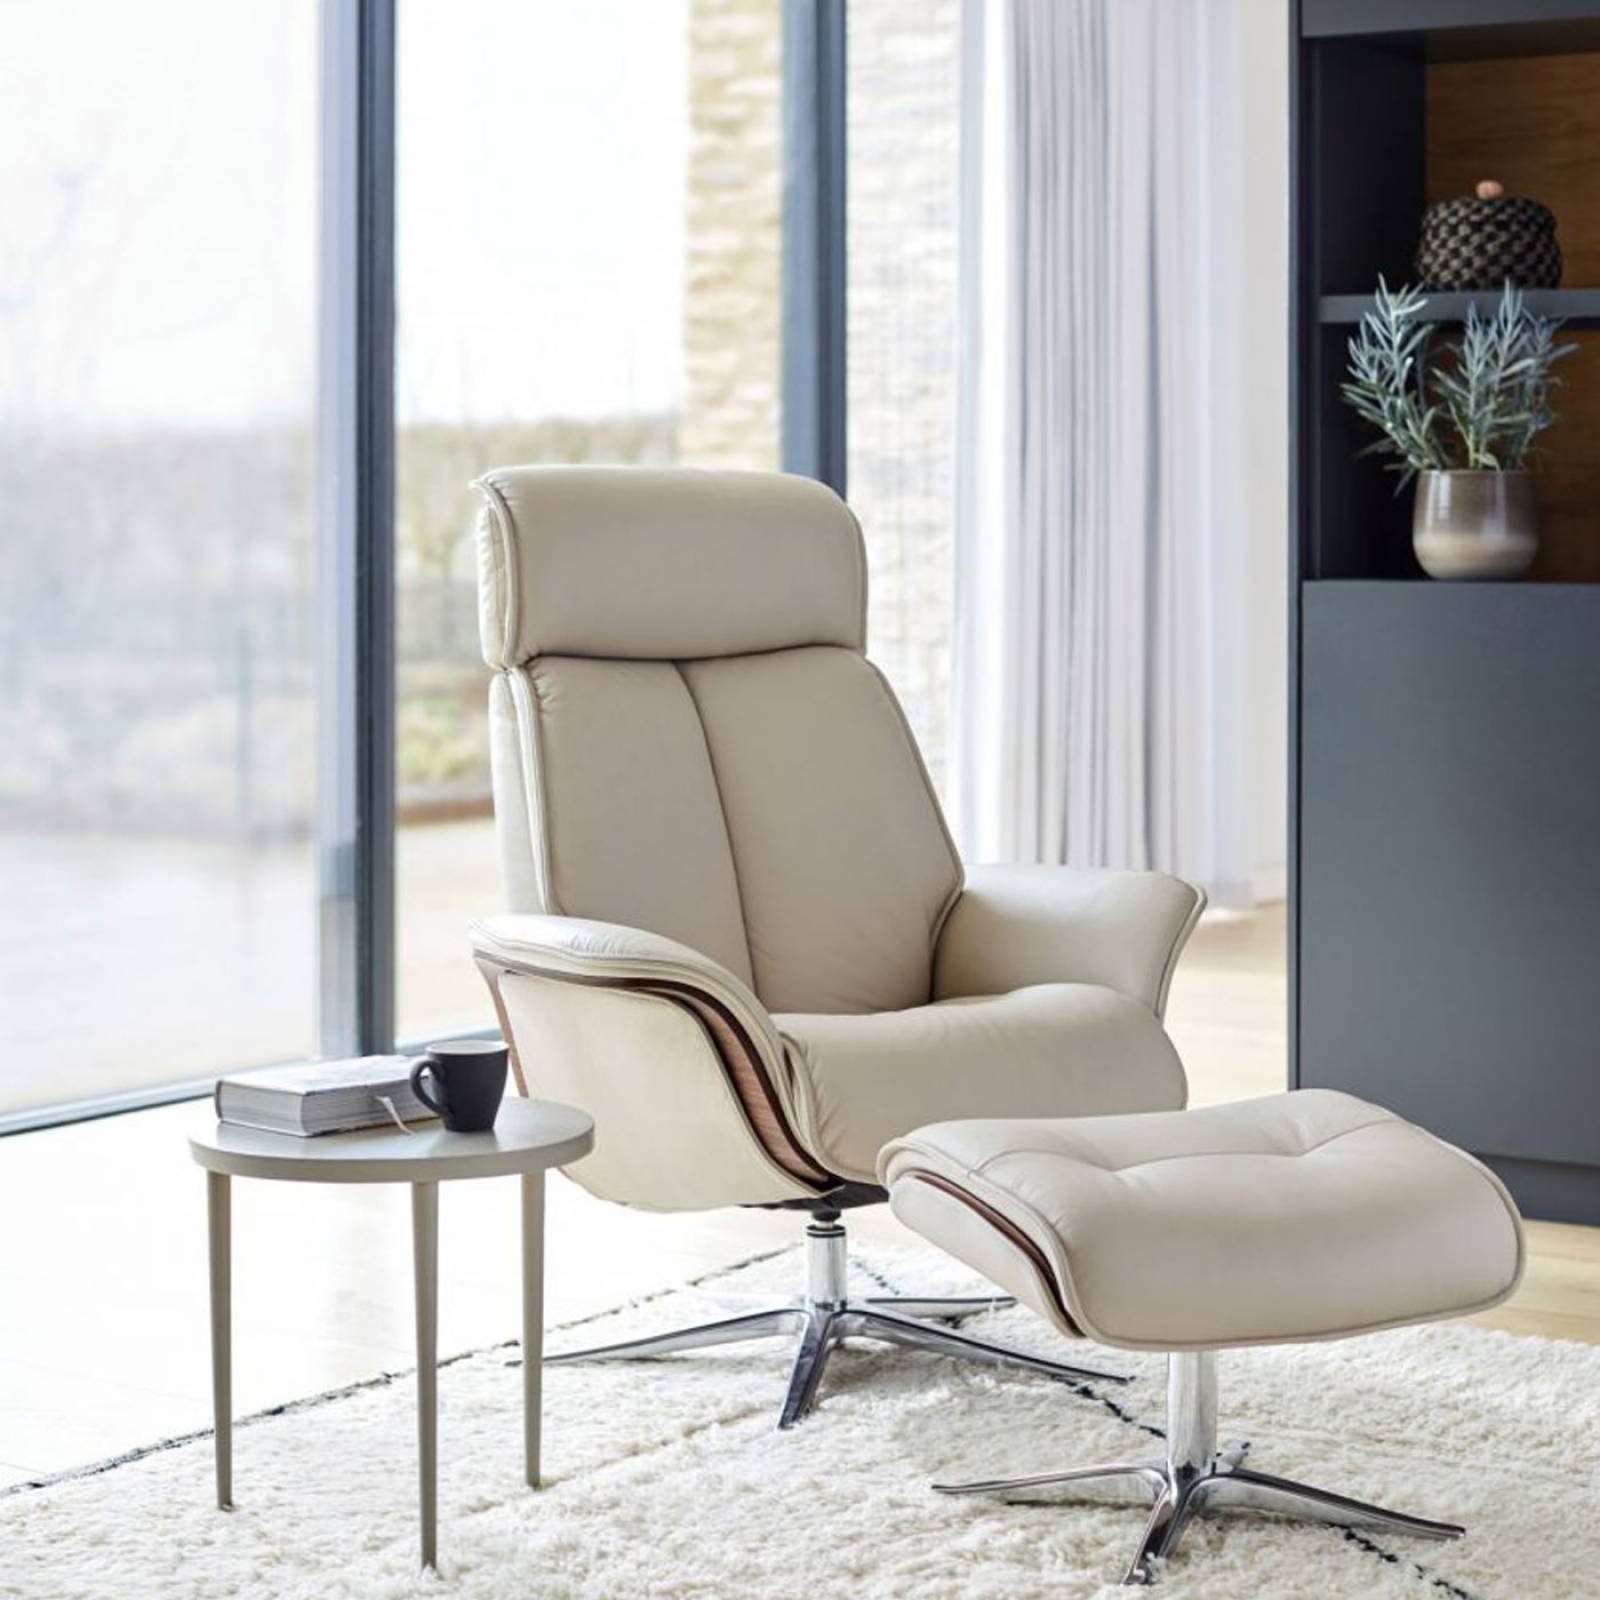 G Plan - The Lund - Recliner Armchair & Footstool - Leather Side thumbnails